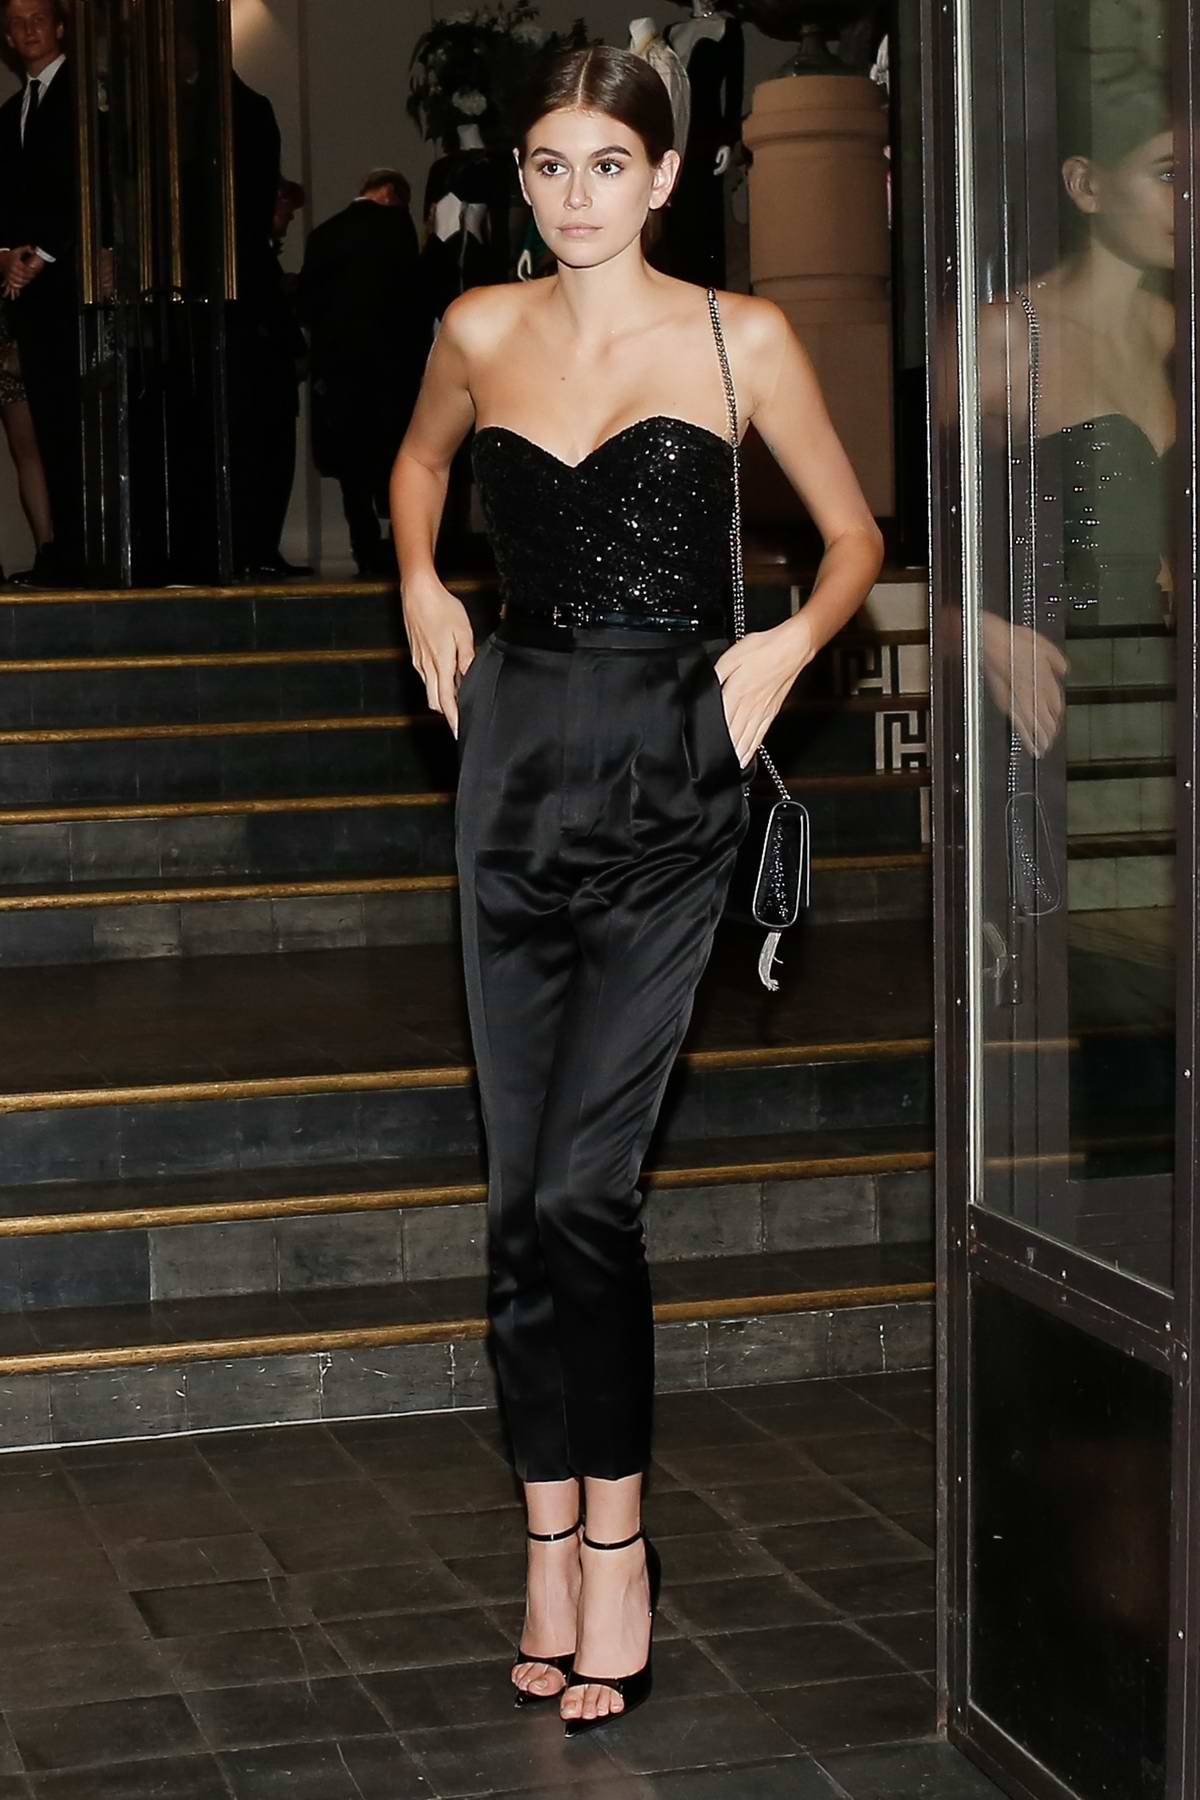 Kaia Gerber attends Vogue dinner during Haute Couture Fall/Winter 2019/20, Paris Fashion Week at Le Trianon in Paris, France